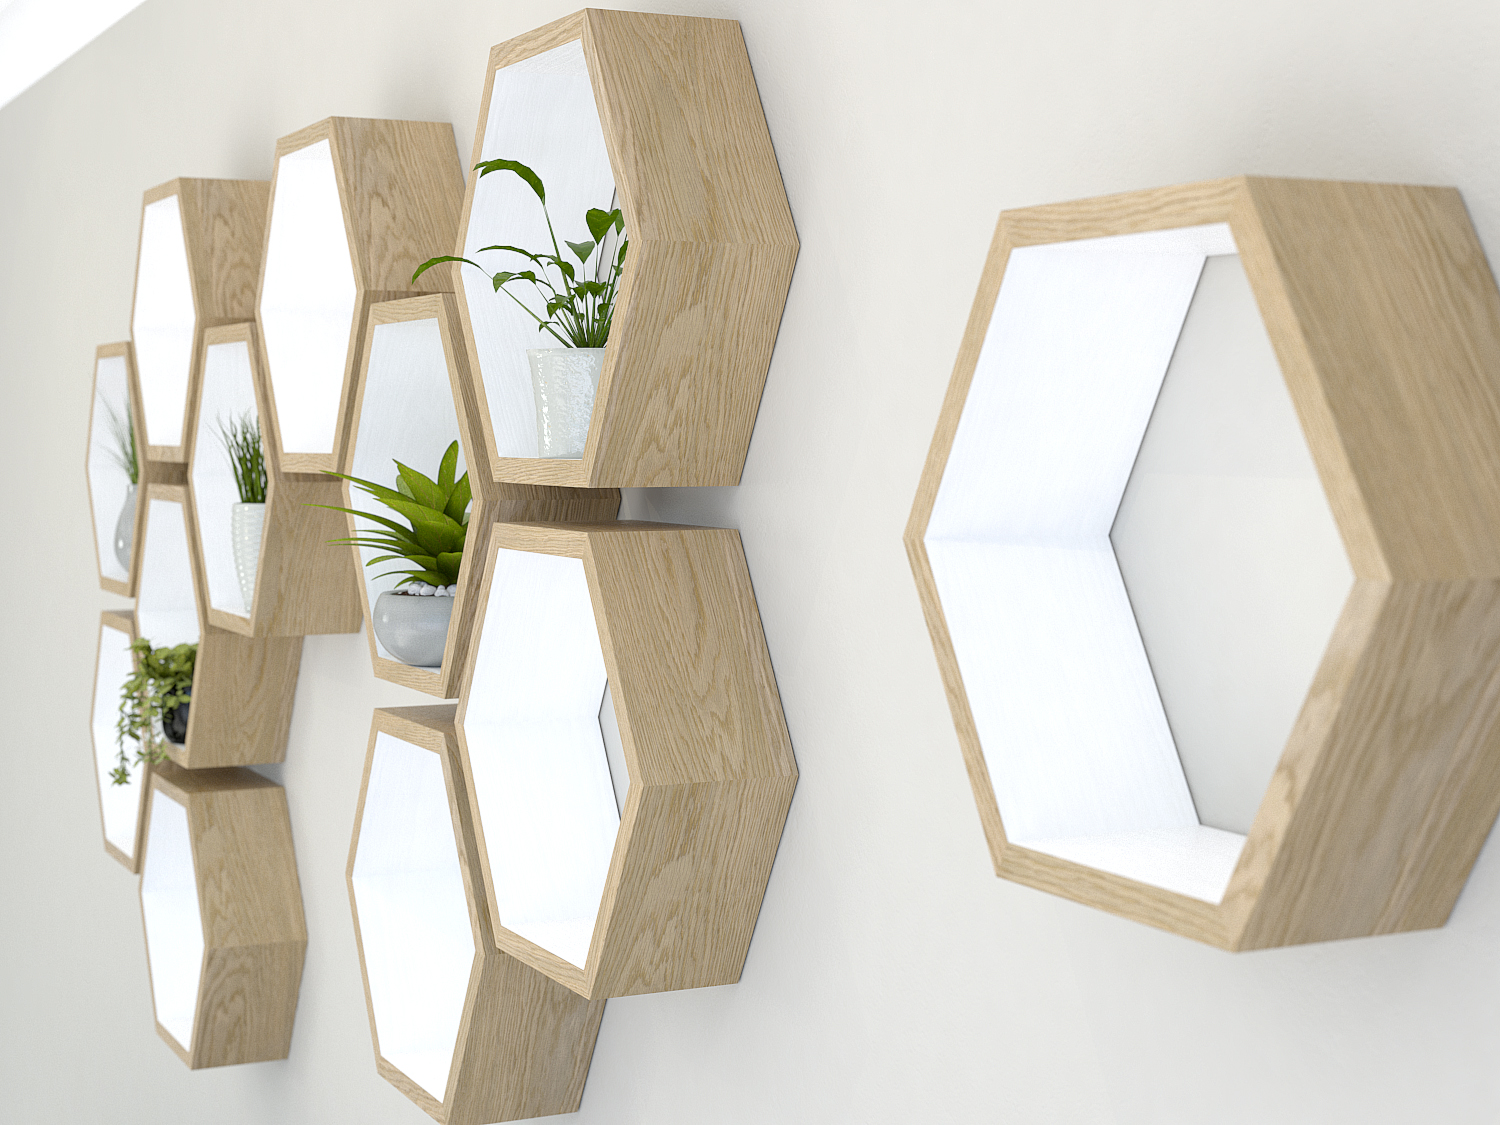 hexagon shelves honeycomb shelves hexagon shelf. Black Bedroom Furniture Sets. Home Design Ideas